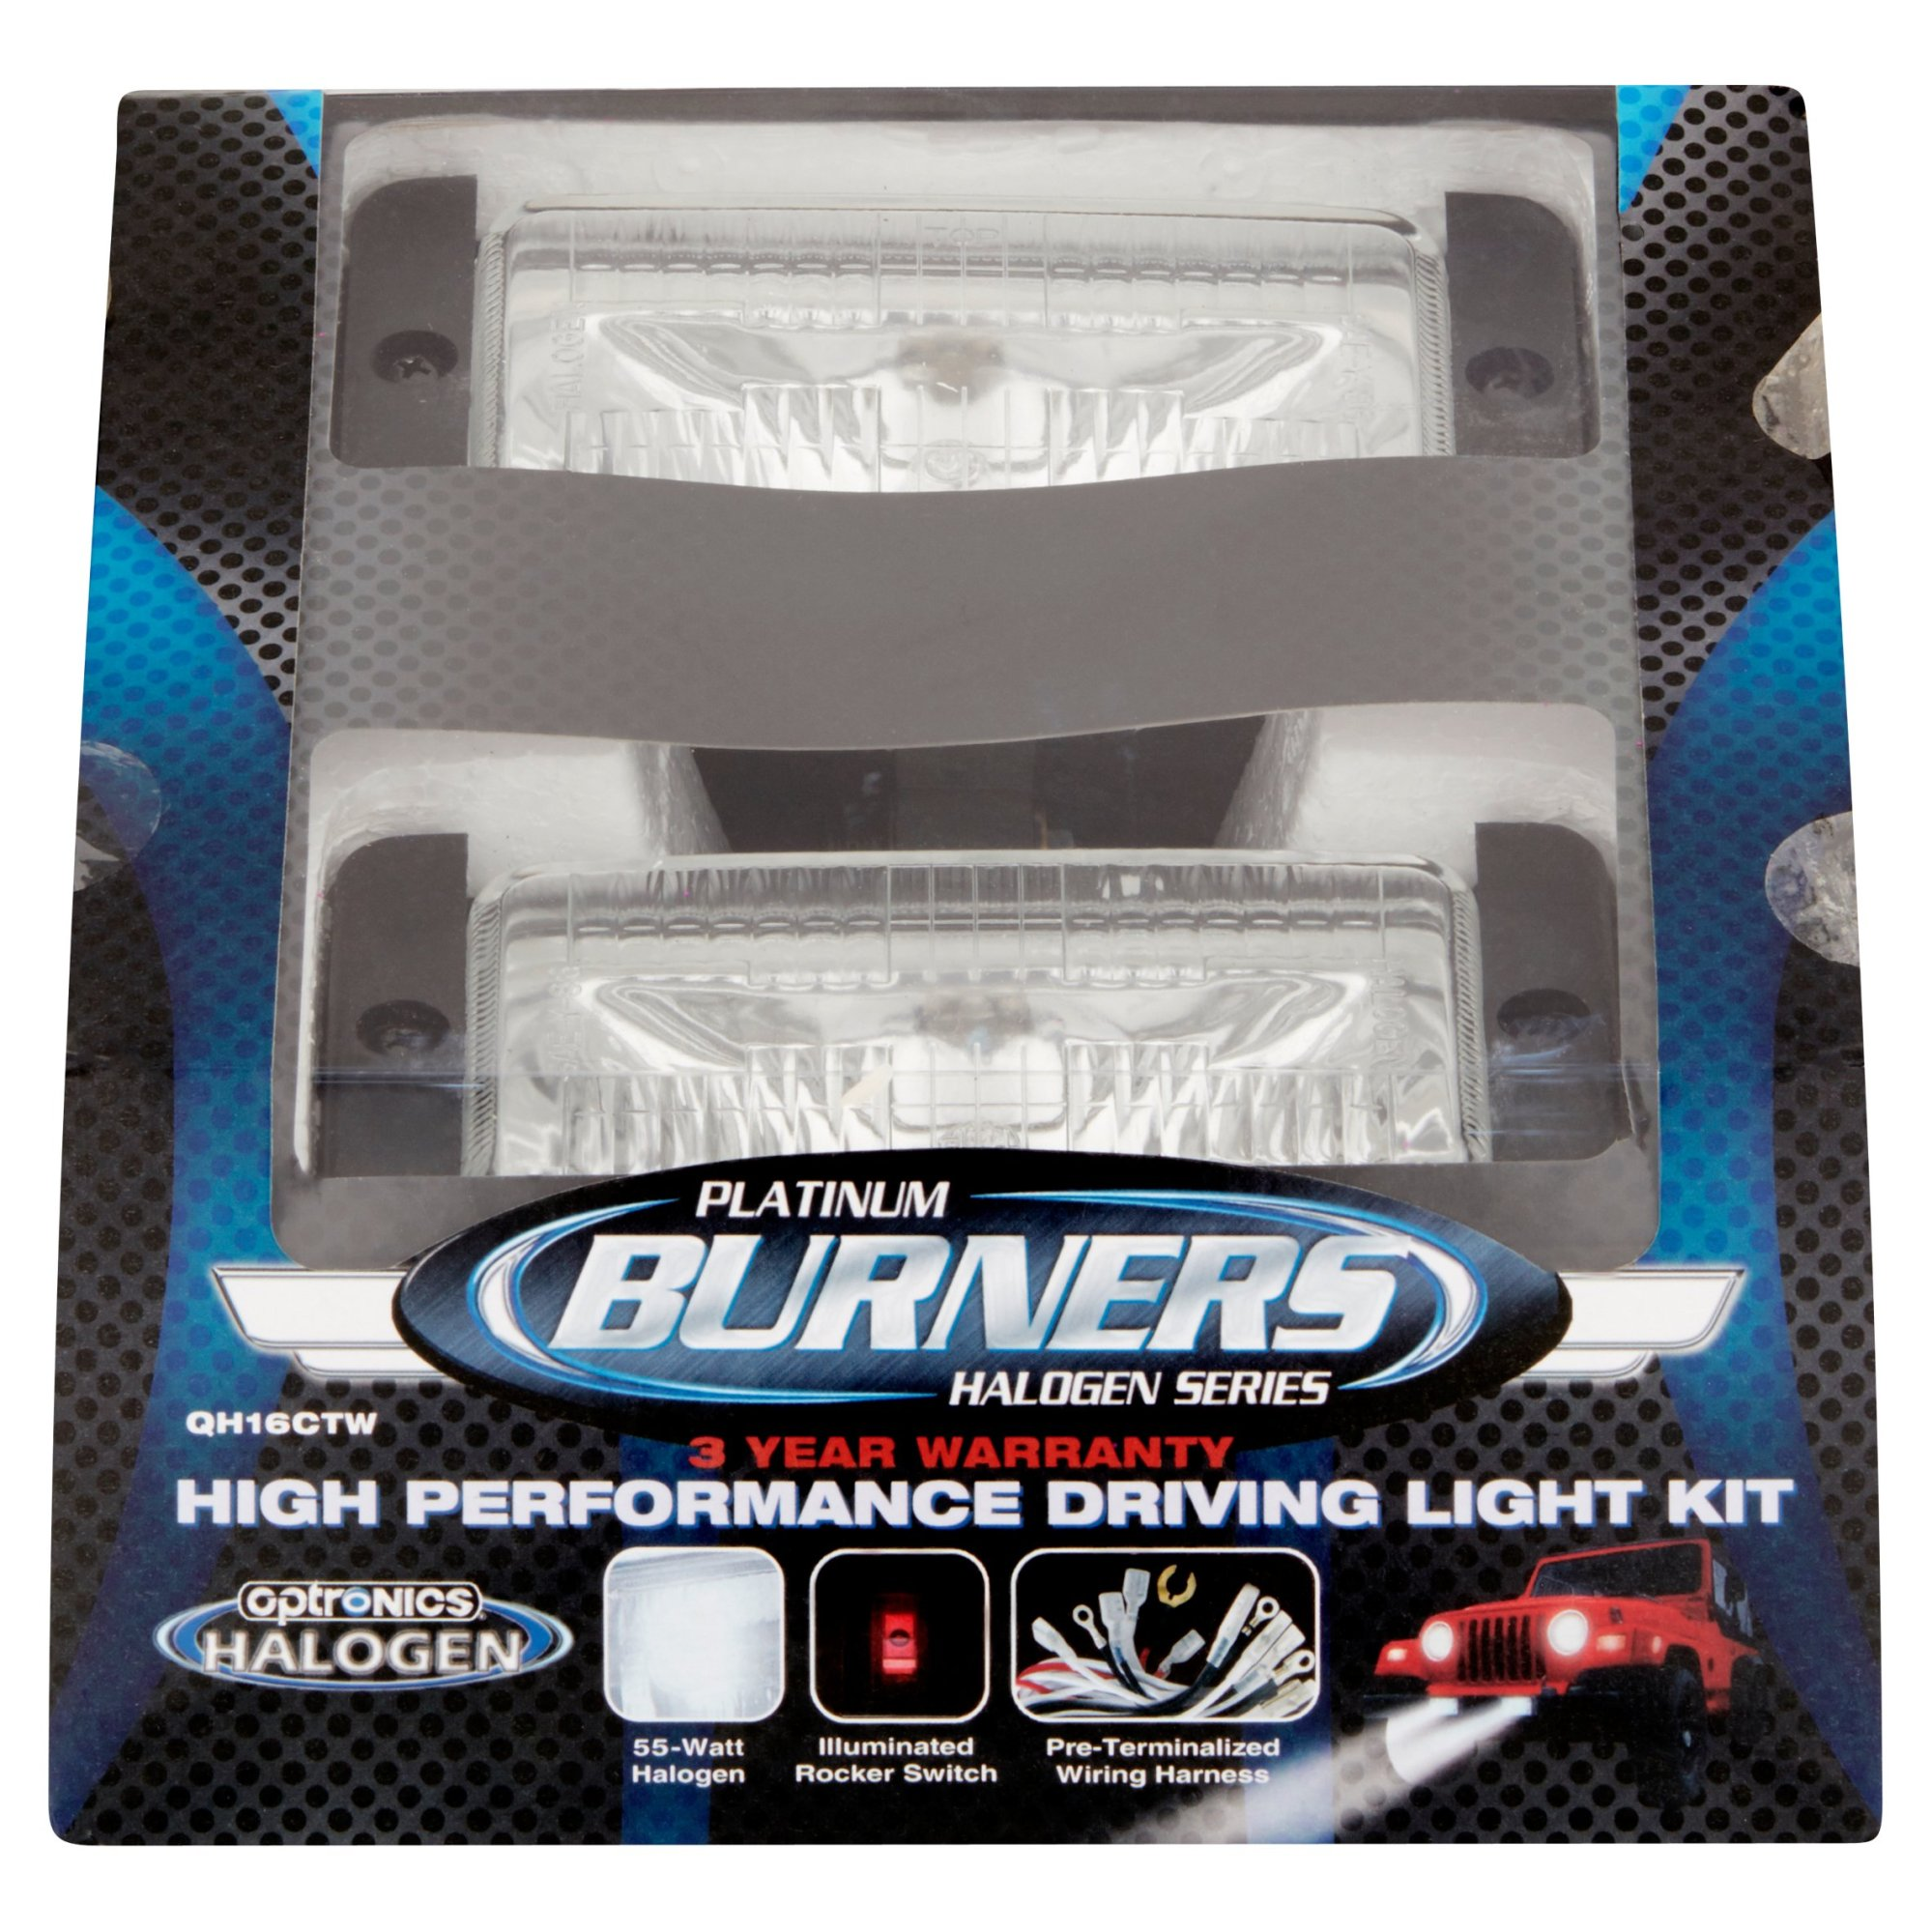 hight resolution of optronics burners platinum halogen series high performance driving light kit walmart com